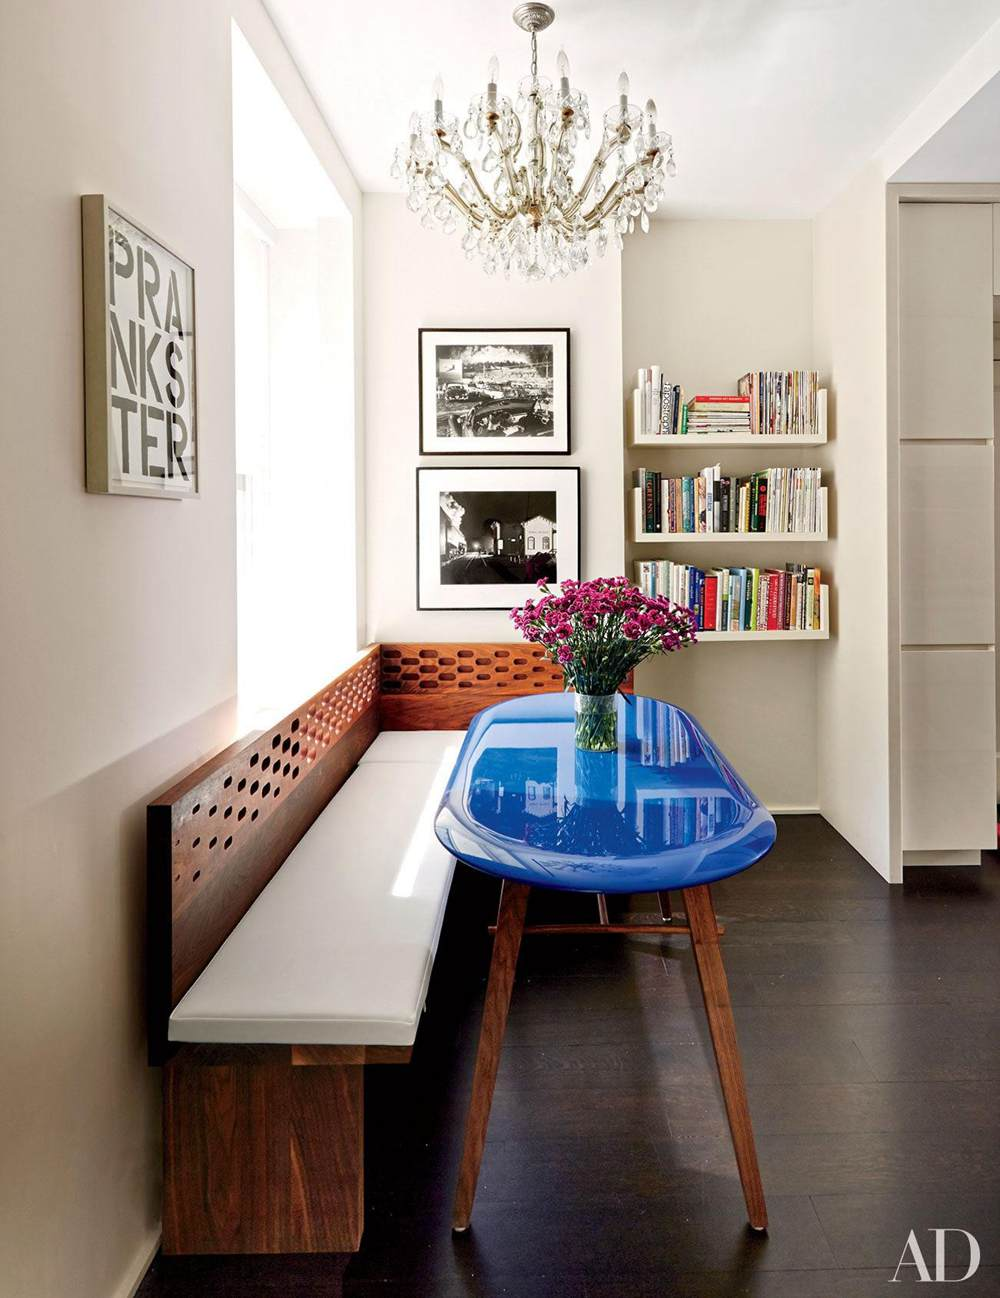 17. Elegant Breakfast Nook Ideas